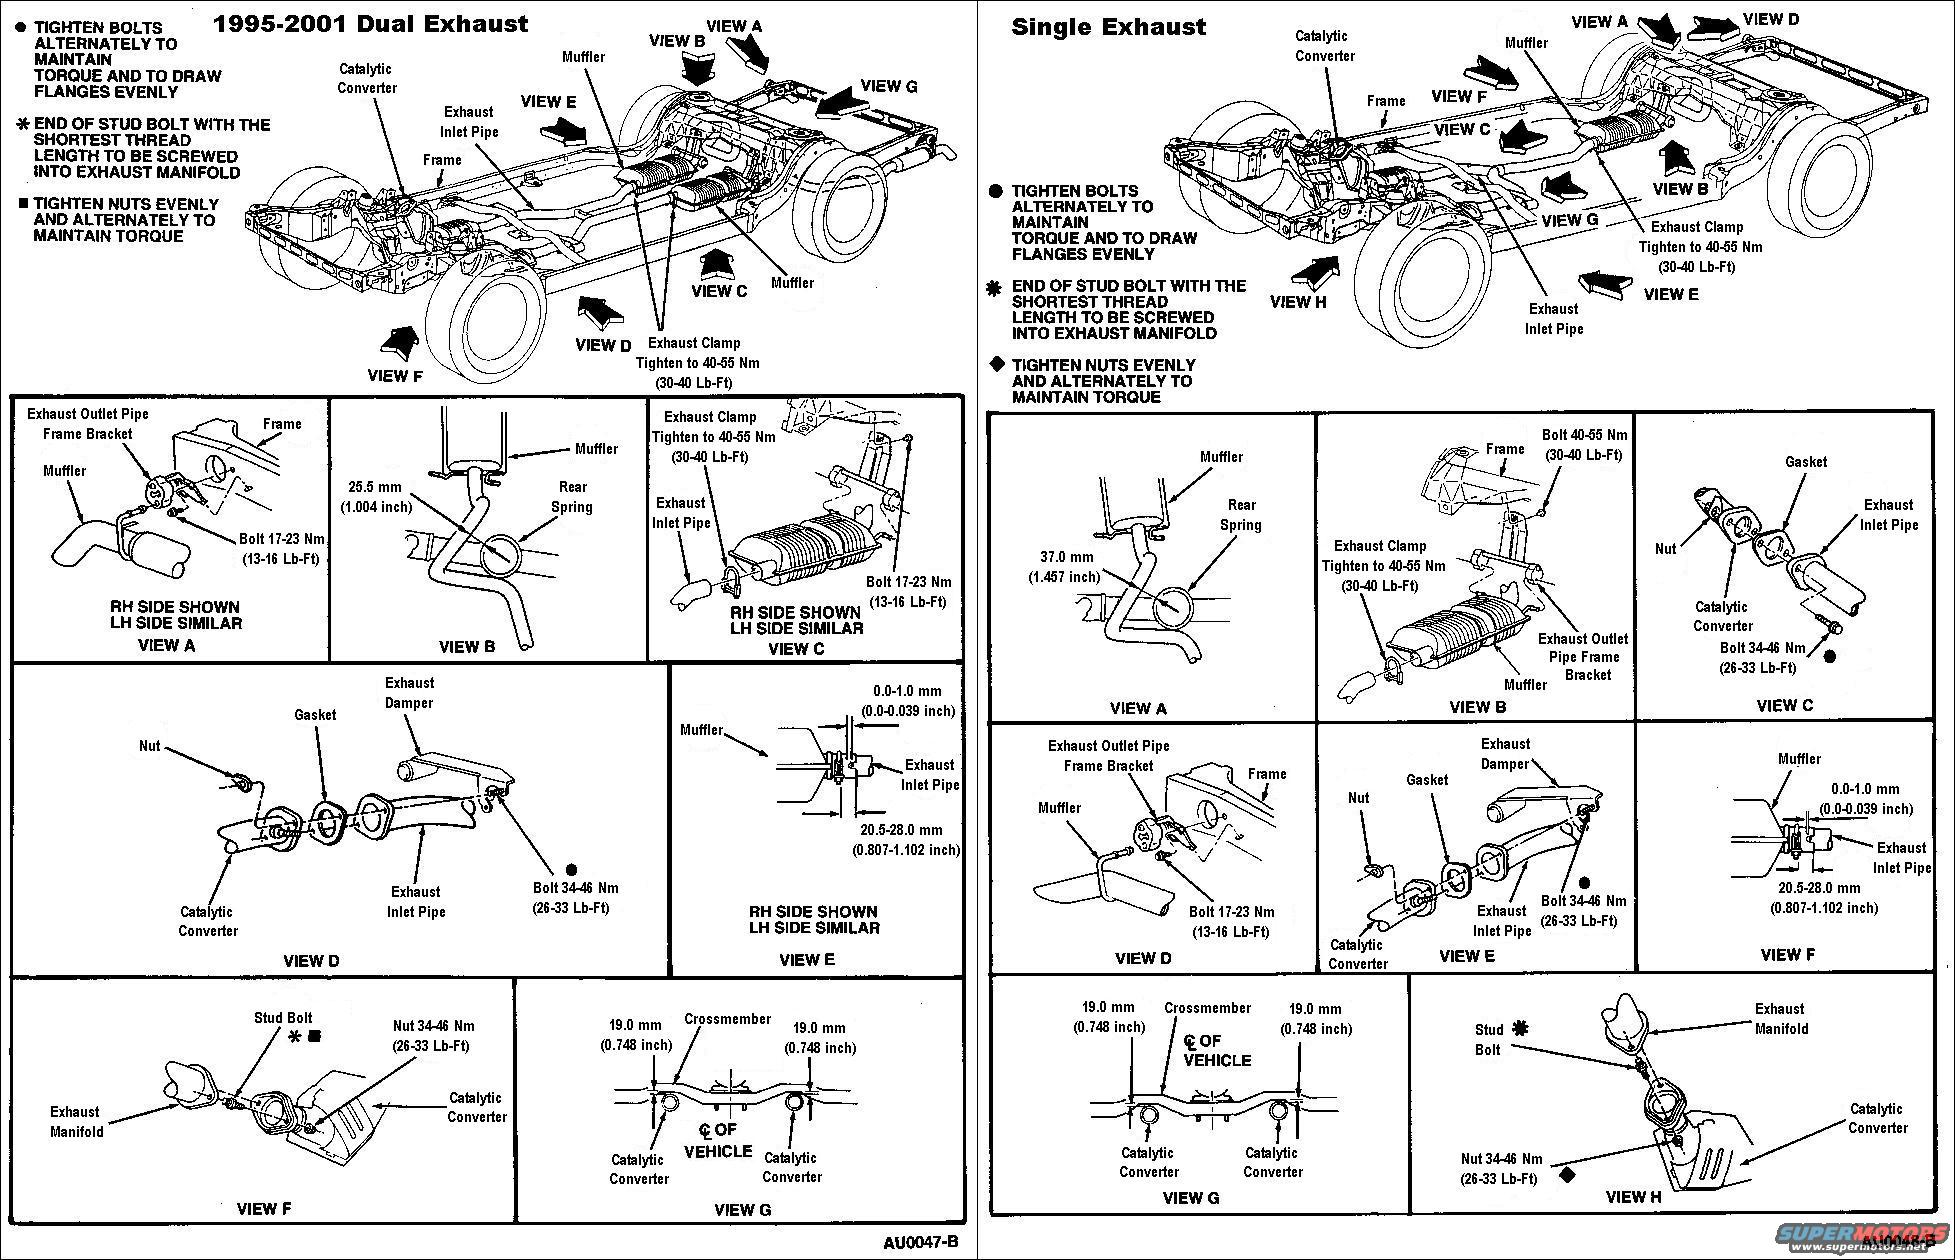 1996 ford crown victoria engine diagram circuit diagram symbols u2022 rh  armkandy co 96 Ford Windstar Repair Diagrams Ford Windstar Parts Diagram